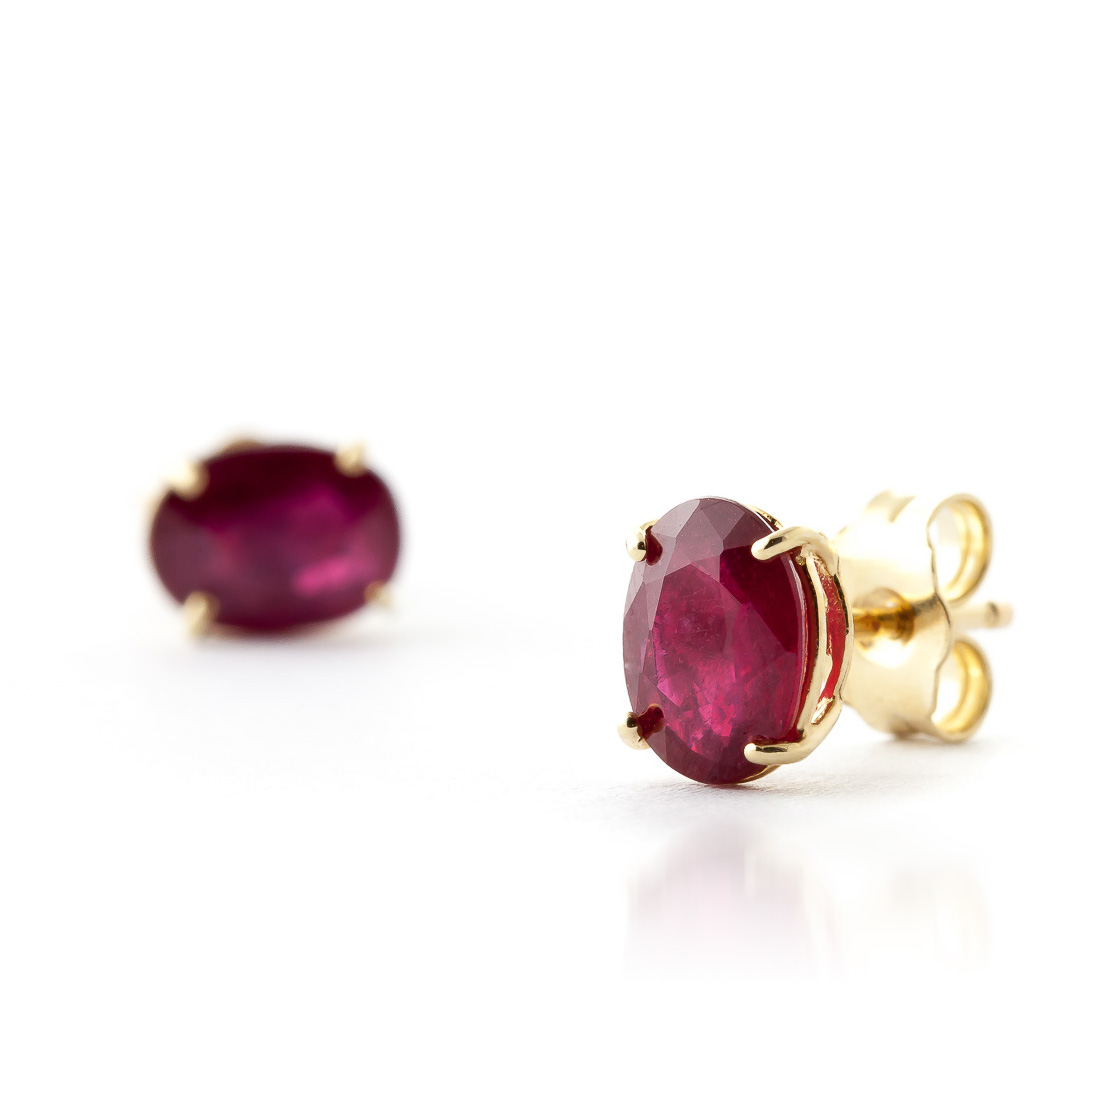 Ruby Stud Earrings 1.8ctw in 14K Gold